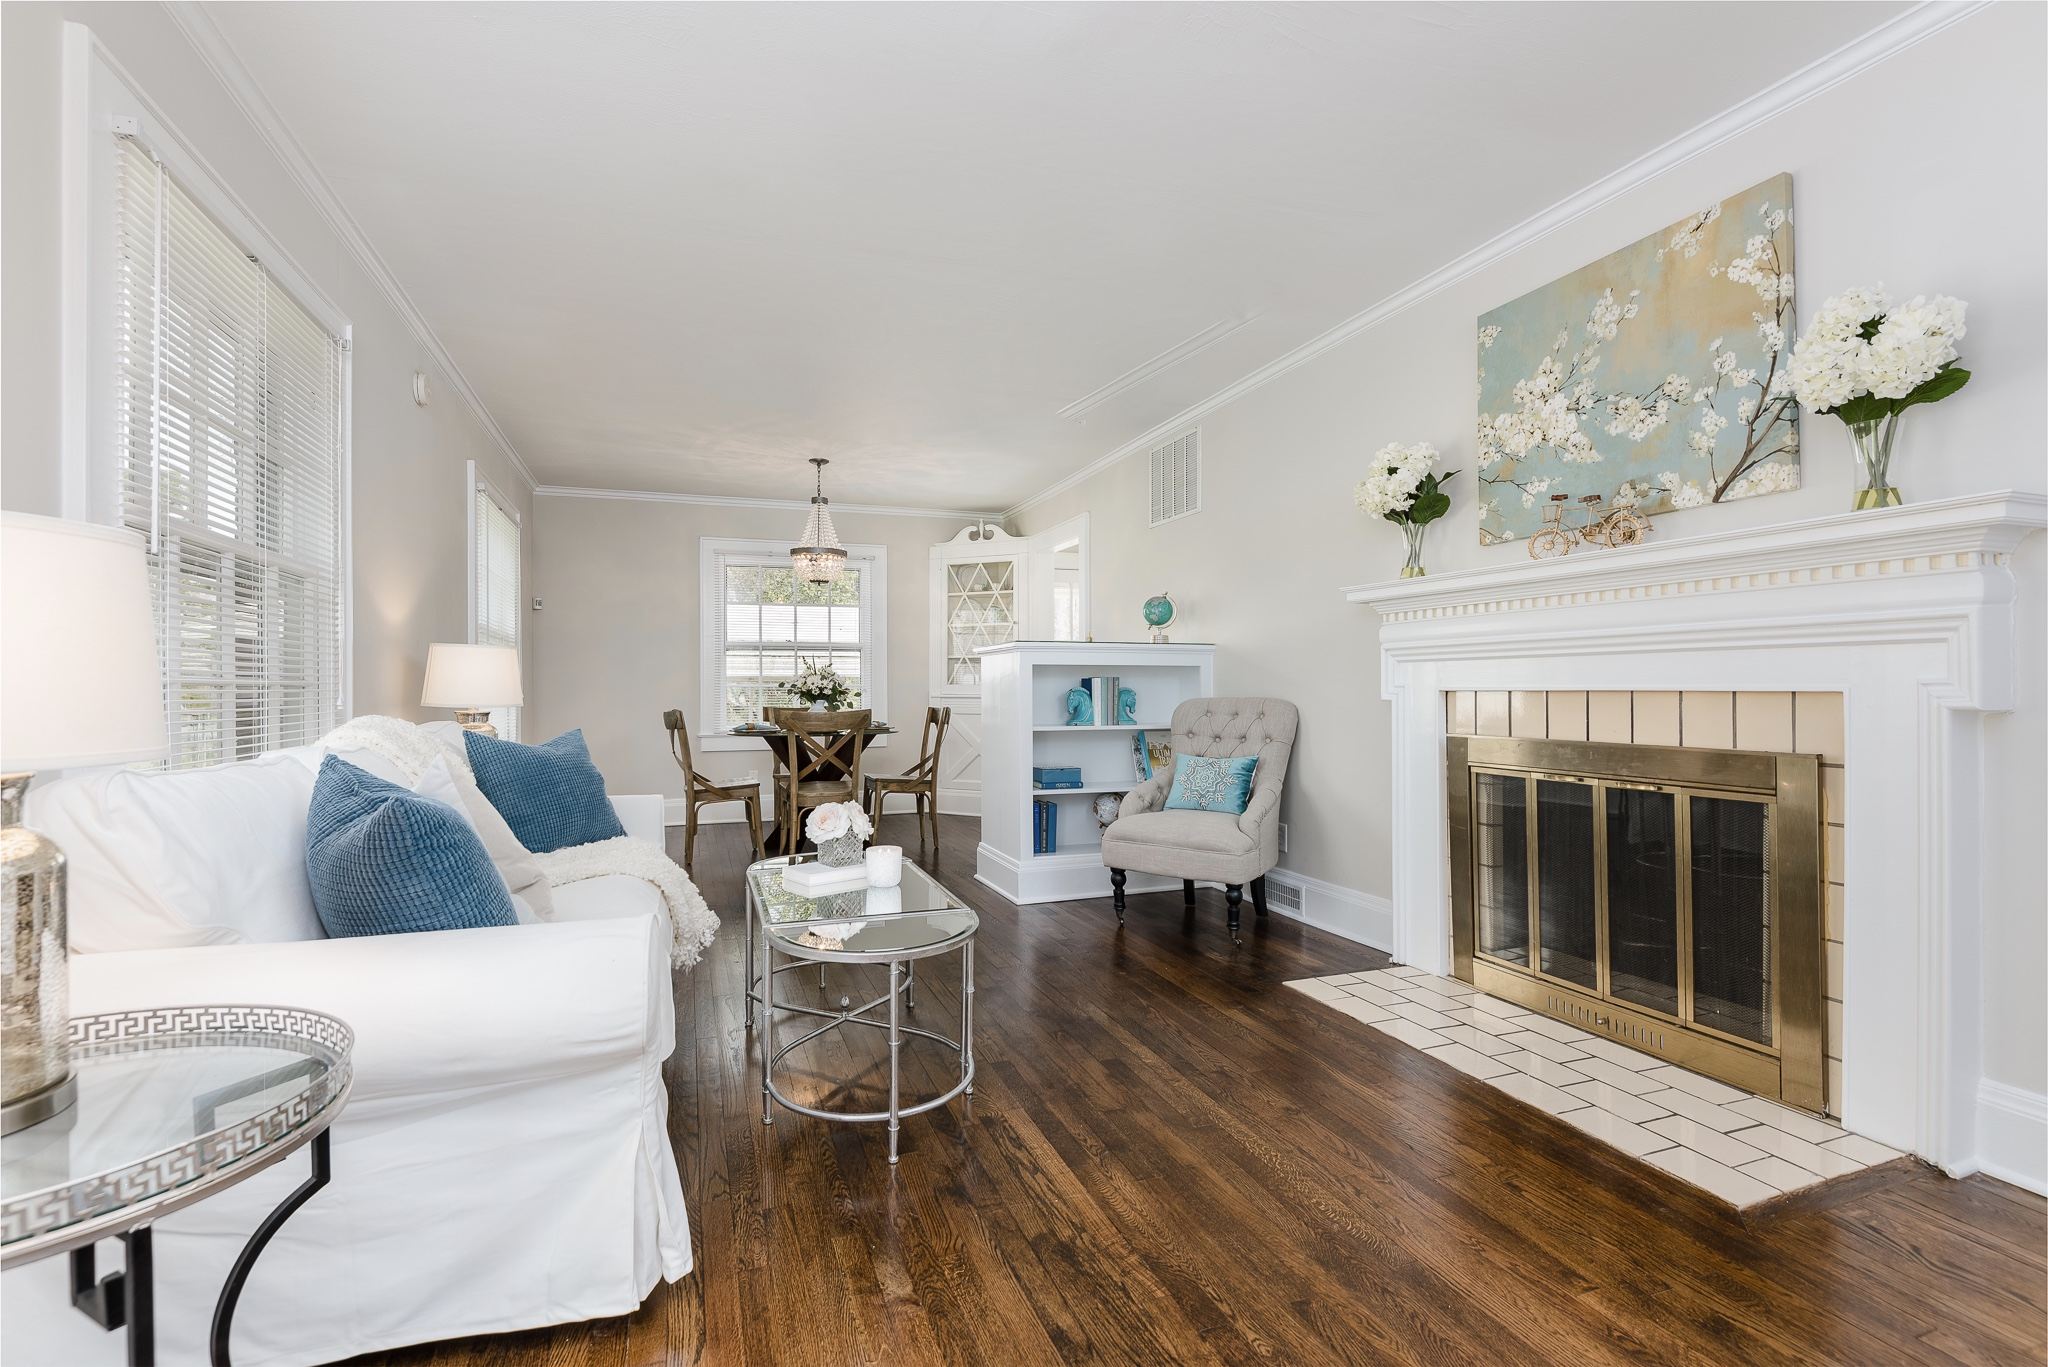 Quick Tips for Staging Your Home